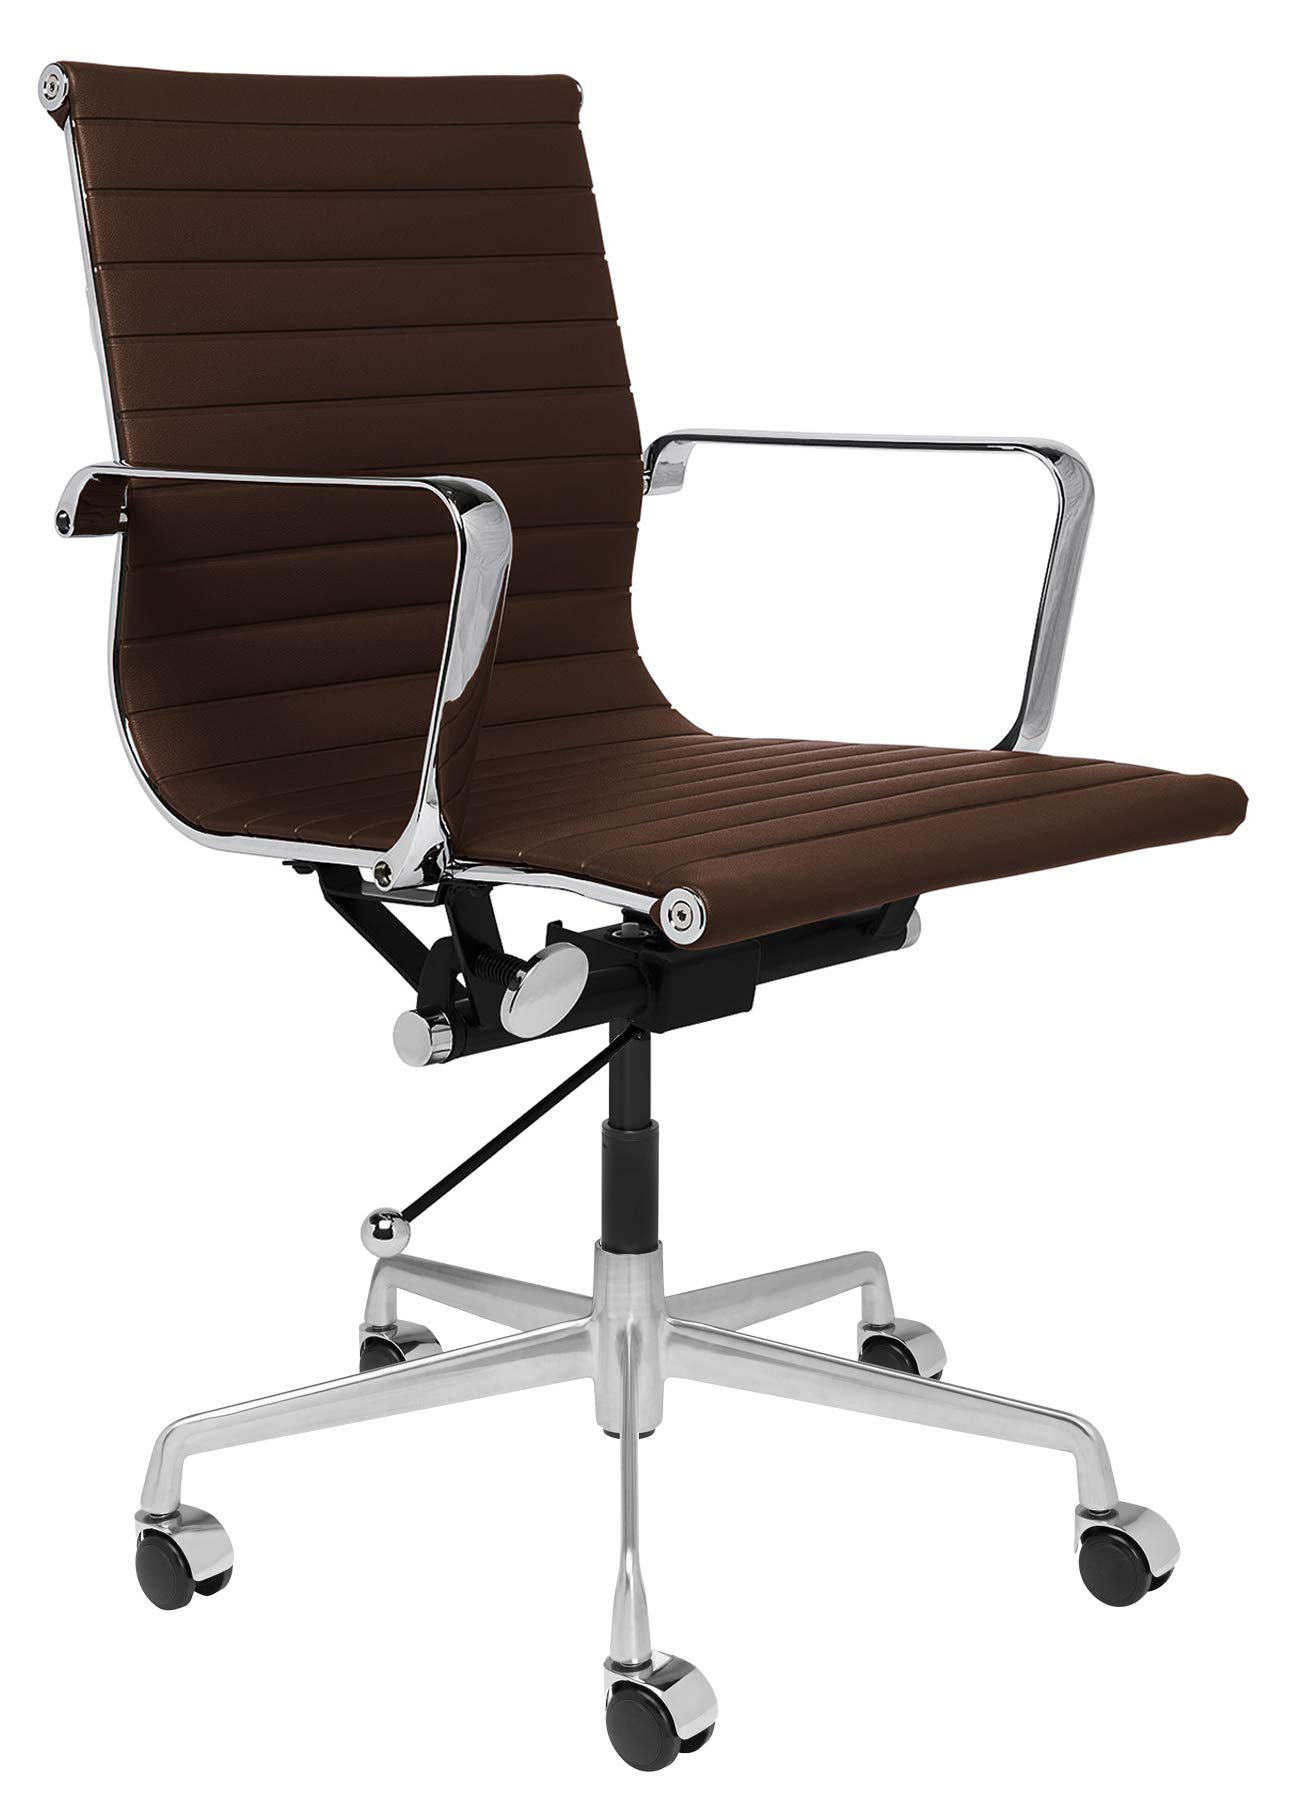 SOHO Ribbed Management Office Chair (Dark Brown) by Laura Davidson Furniture